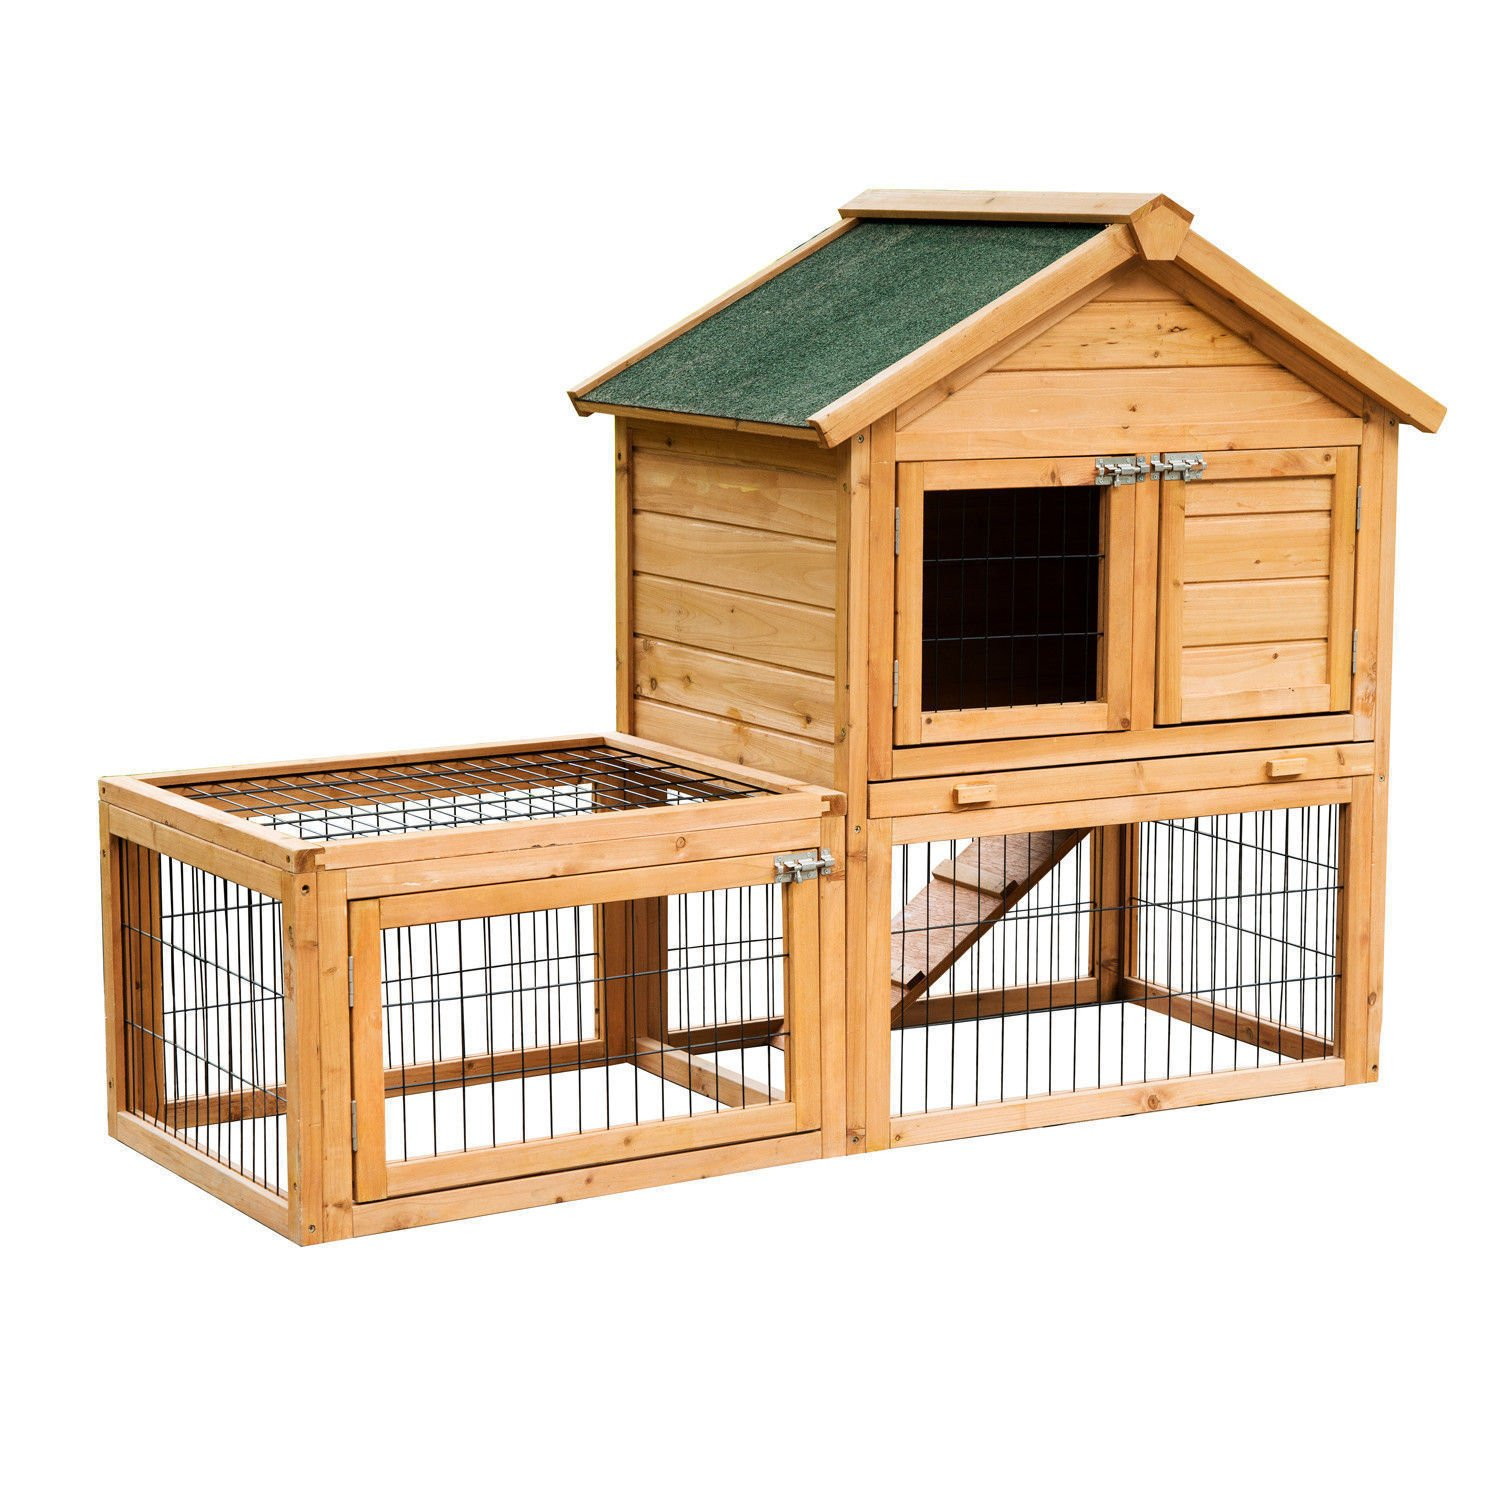 Eight24hours 53'' Wooden Chicken Coop Rabbit Hutch Small Pet House Hen Cages + FREE E-Book by Eight24hours (Image #1)